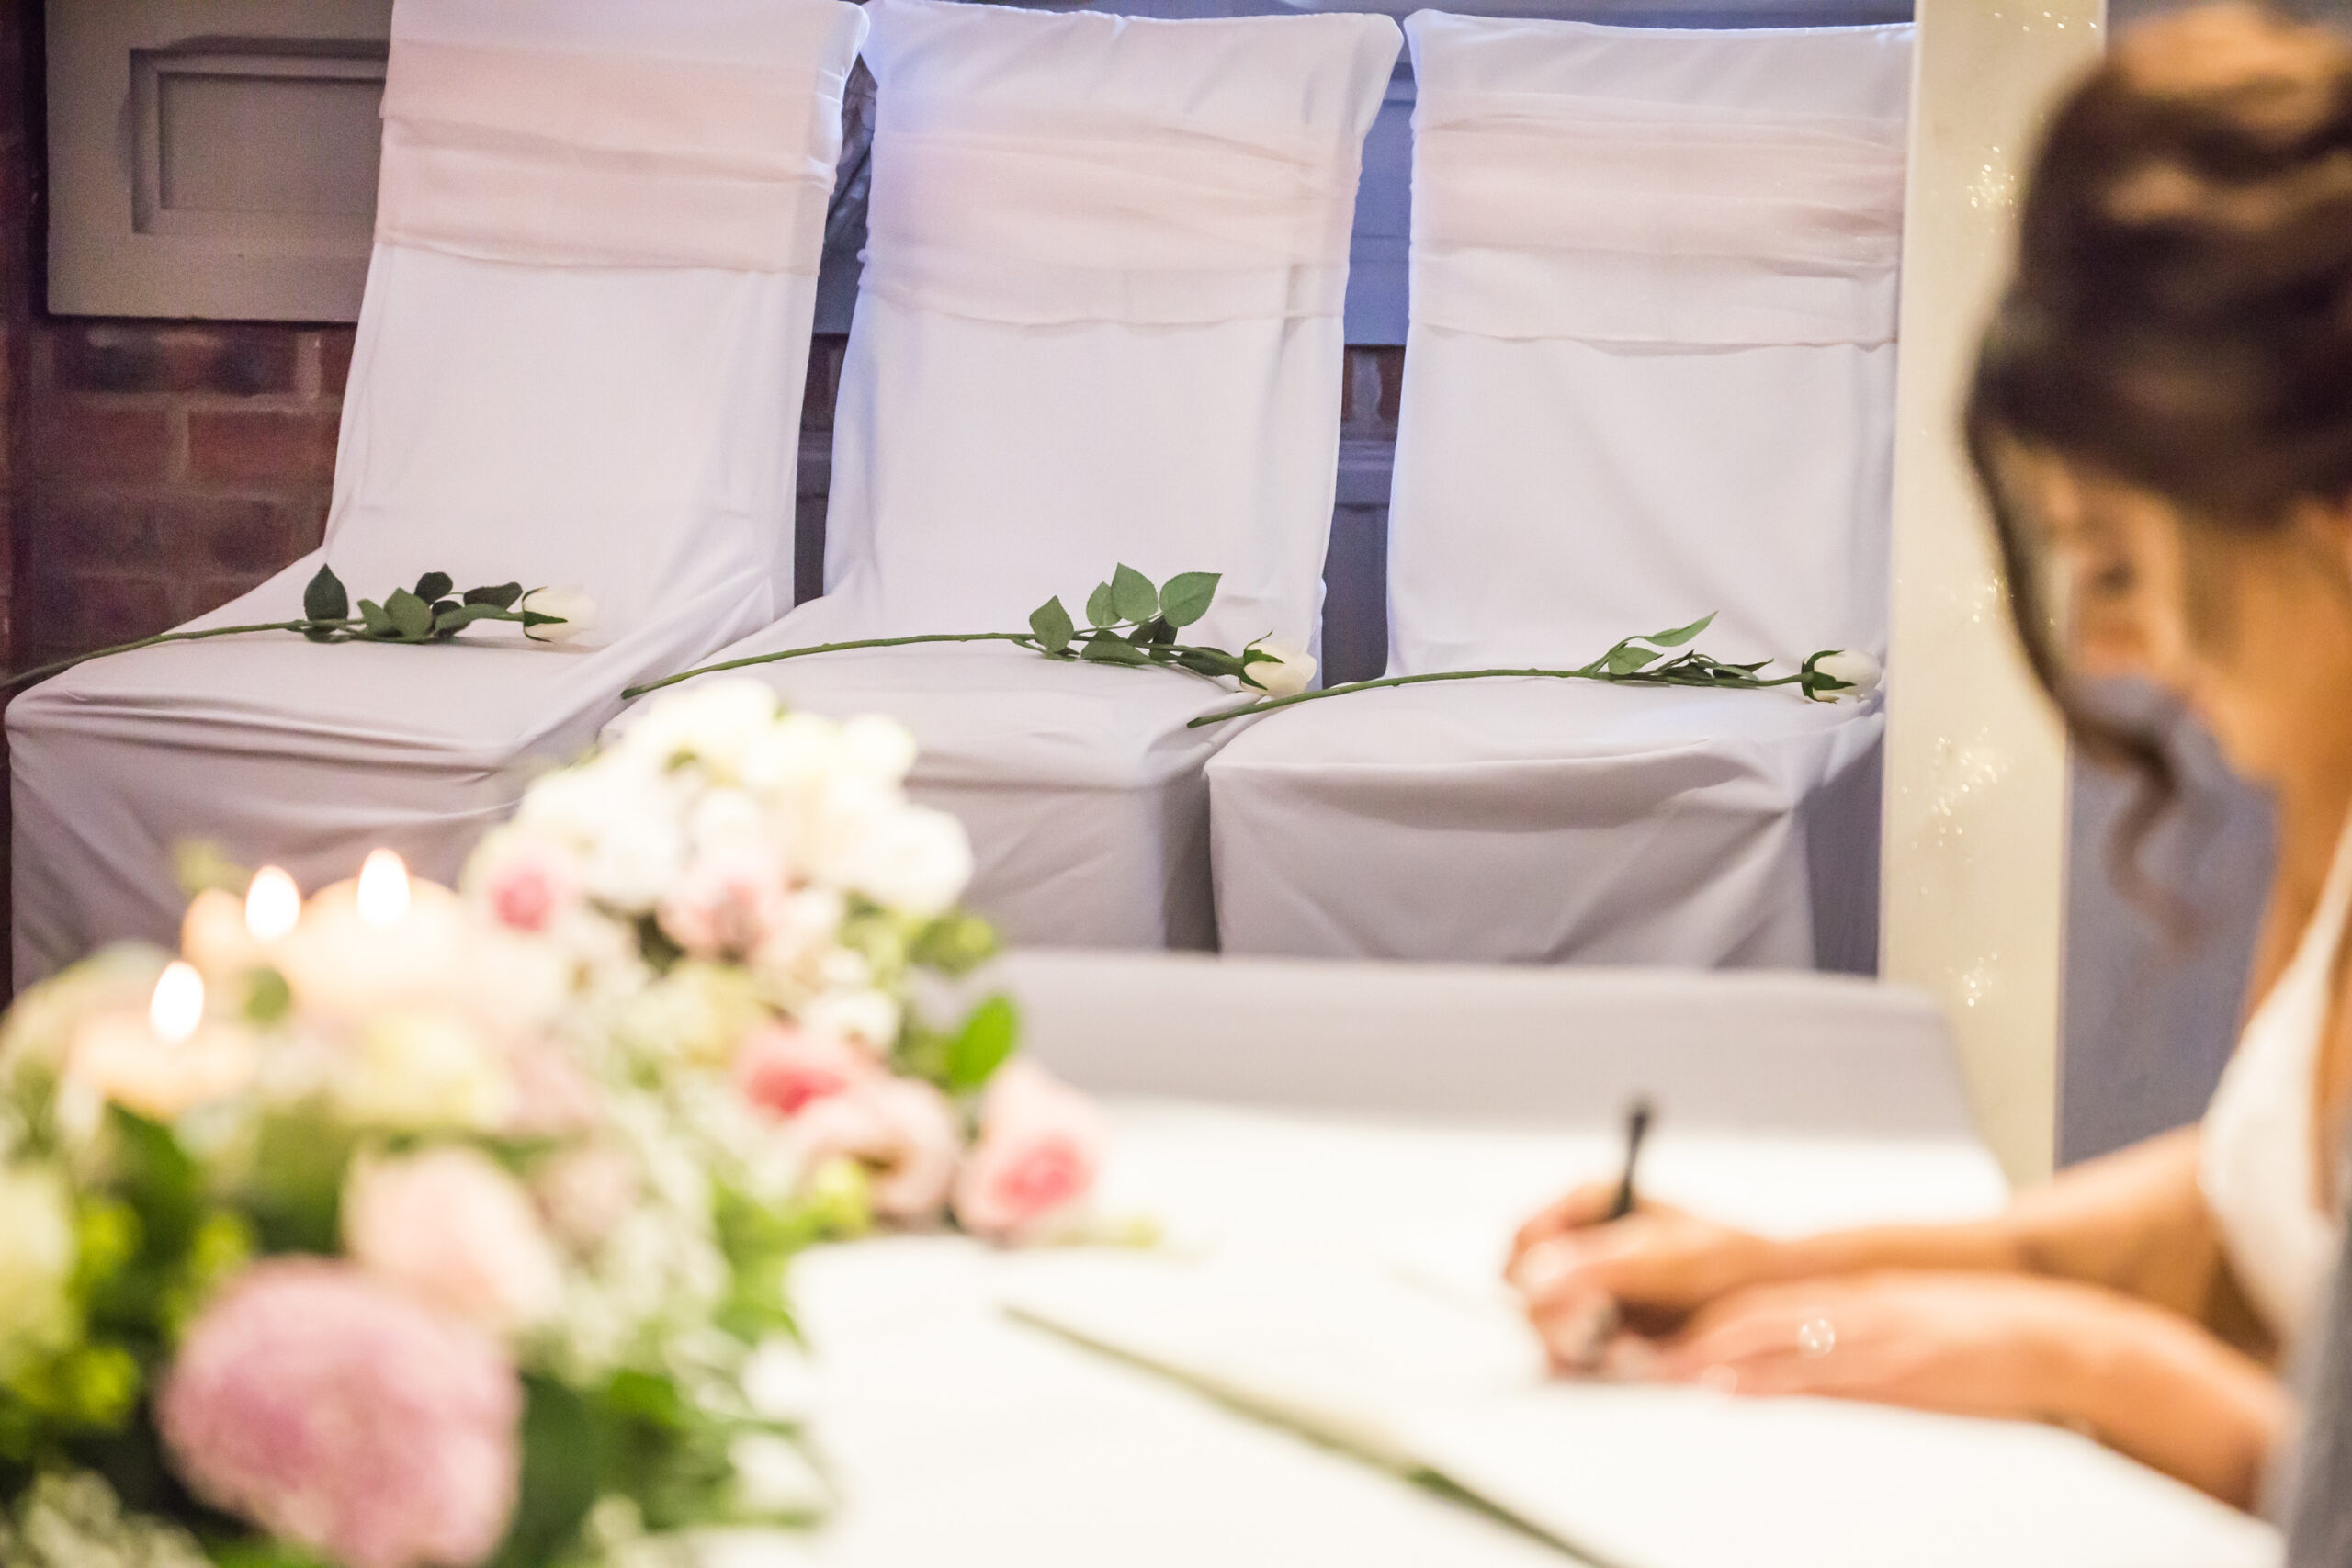 Three roses on chairs remembering loved ones as the bride signs the marriage register